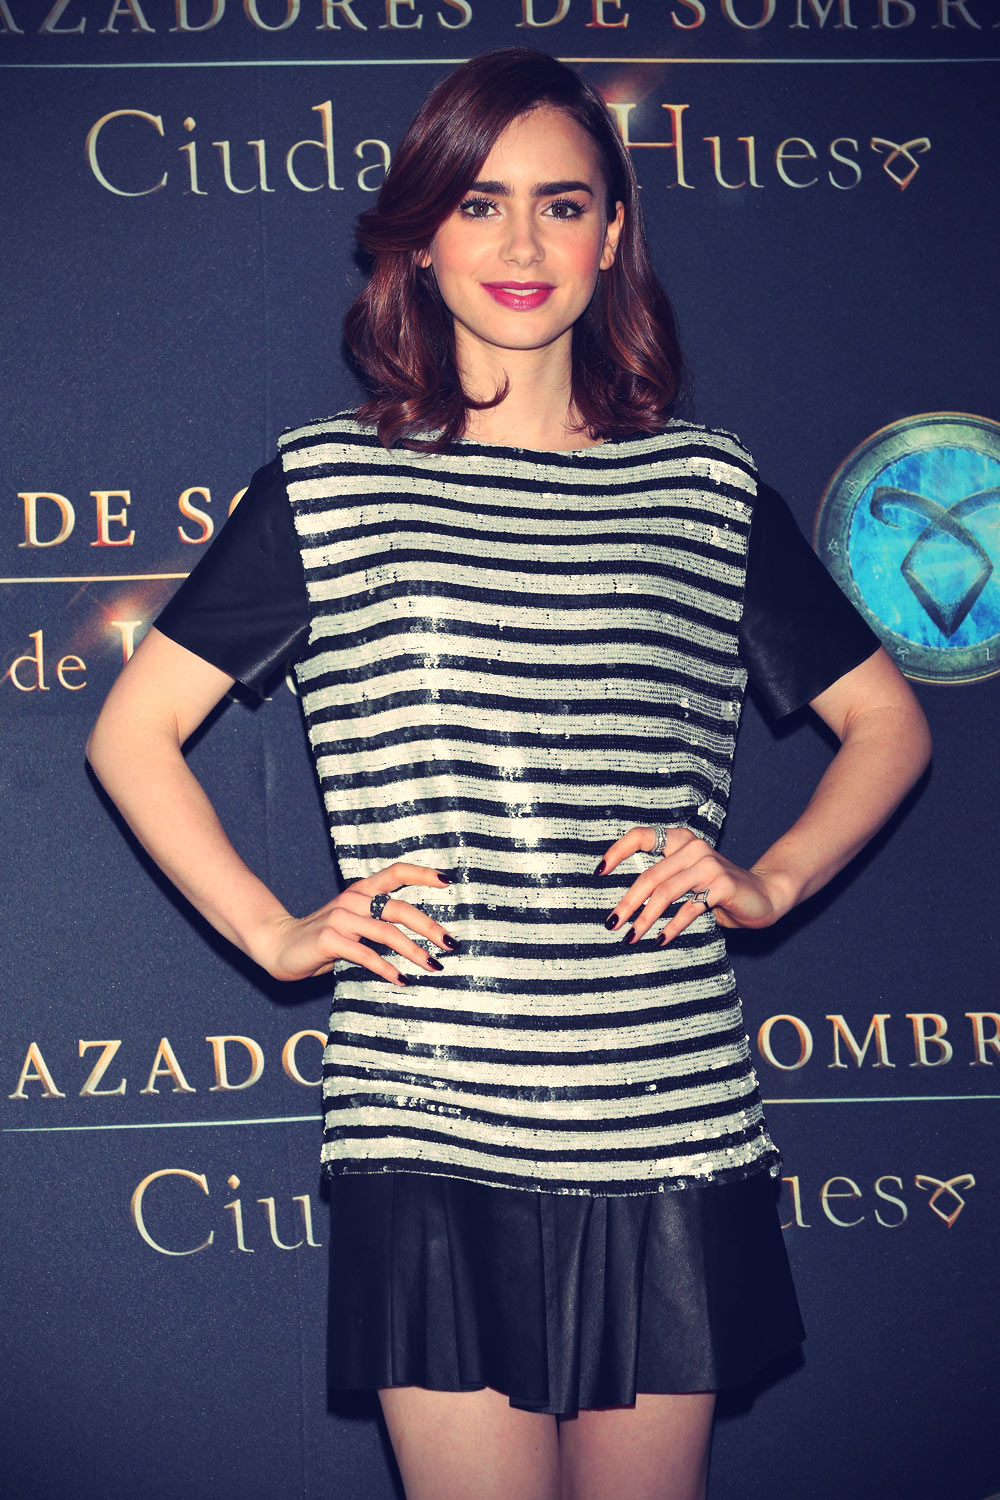 Lily Collins poses for The Mortal Instruments: City of Bones Mexico City photocall